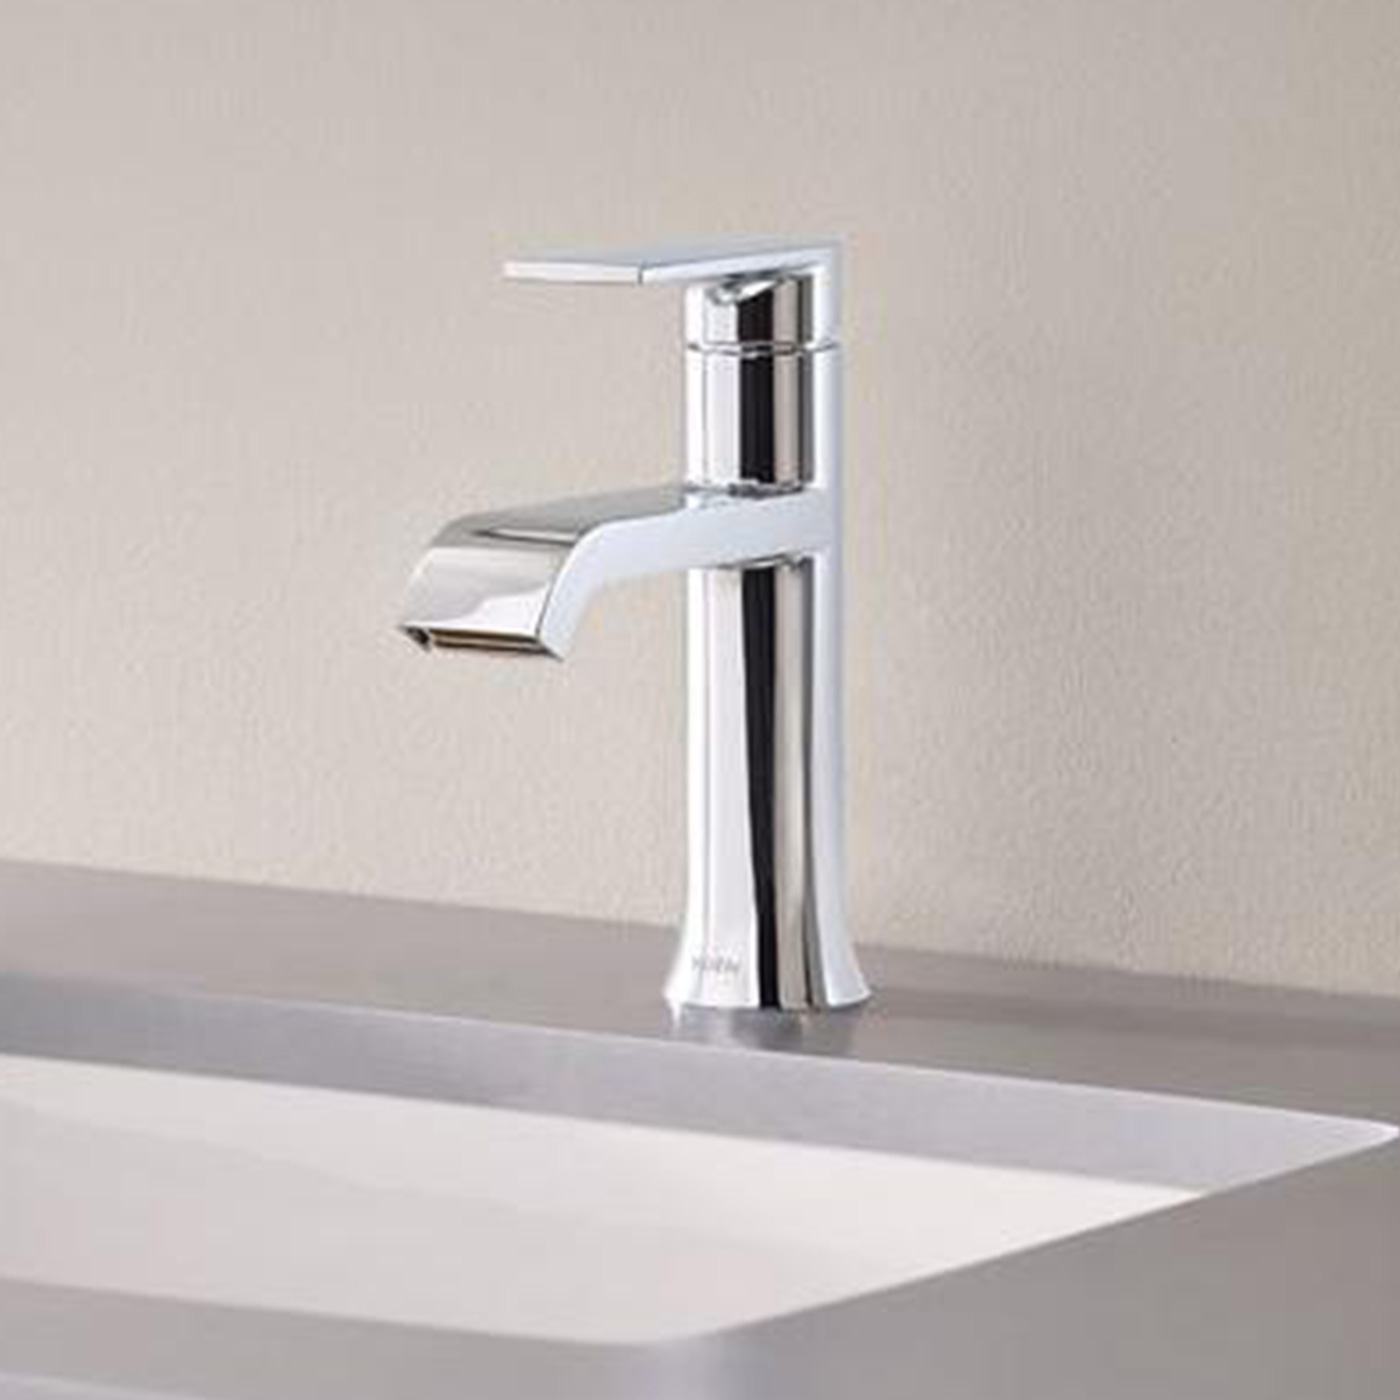 nickel faucet centerset amazon single cheap water dp model control pfister in ashfield brushed com bathroom faucets efficient